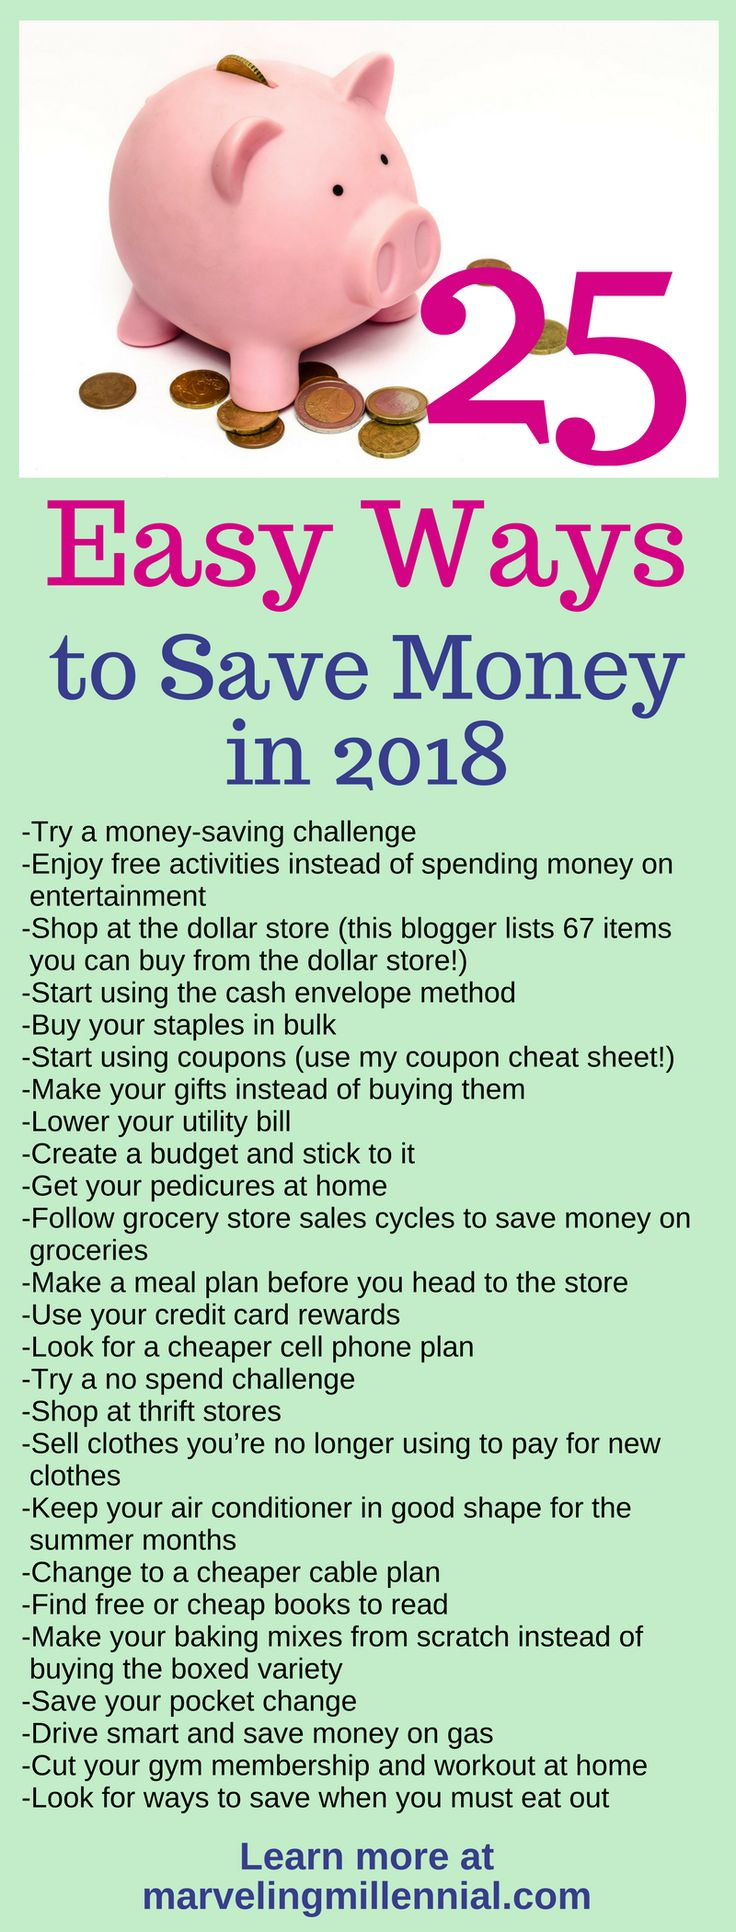 25 easy ways to save money in 2018